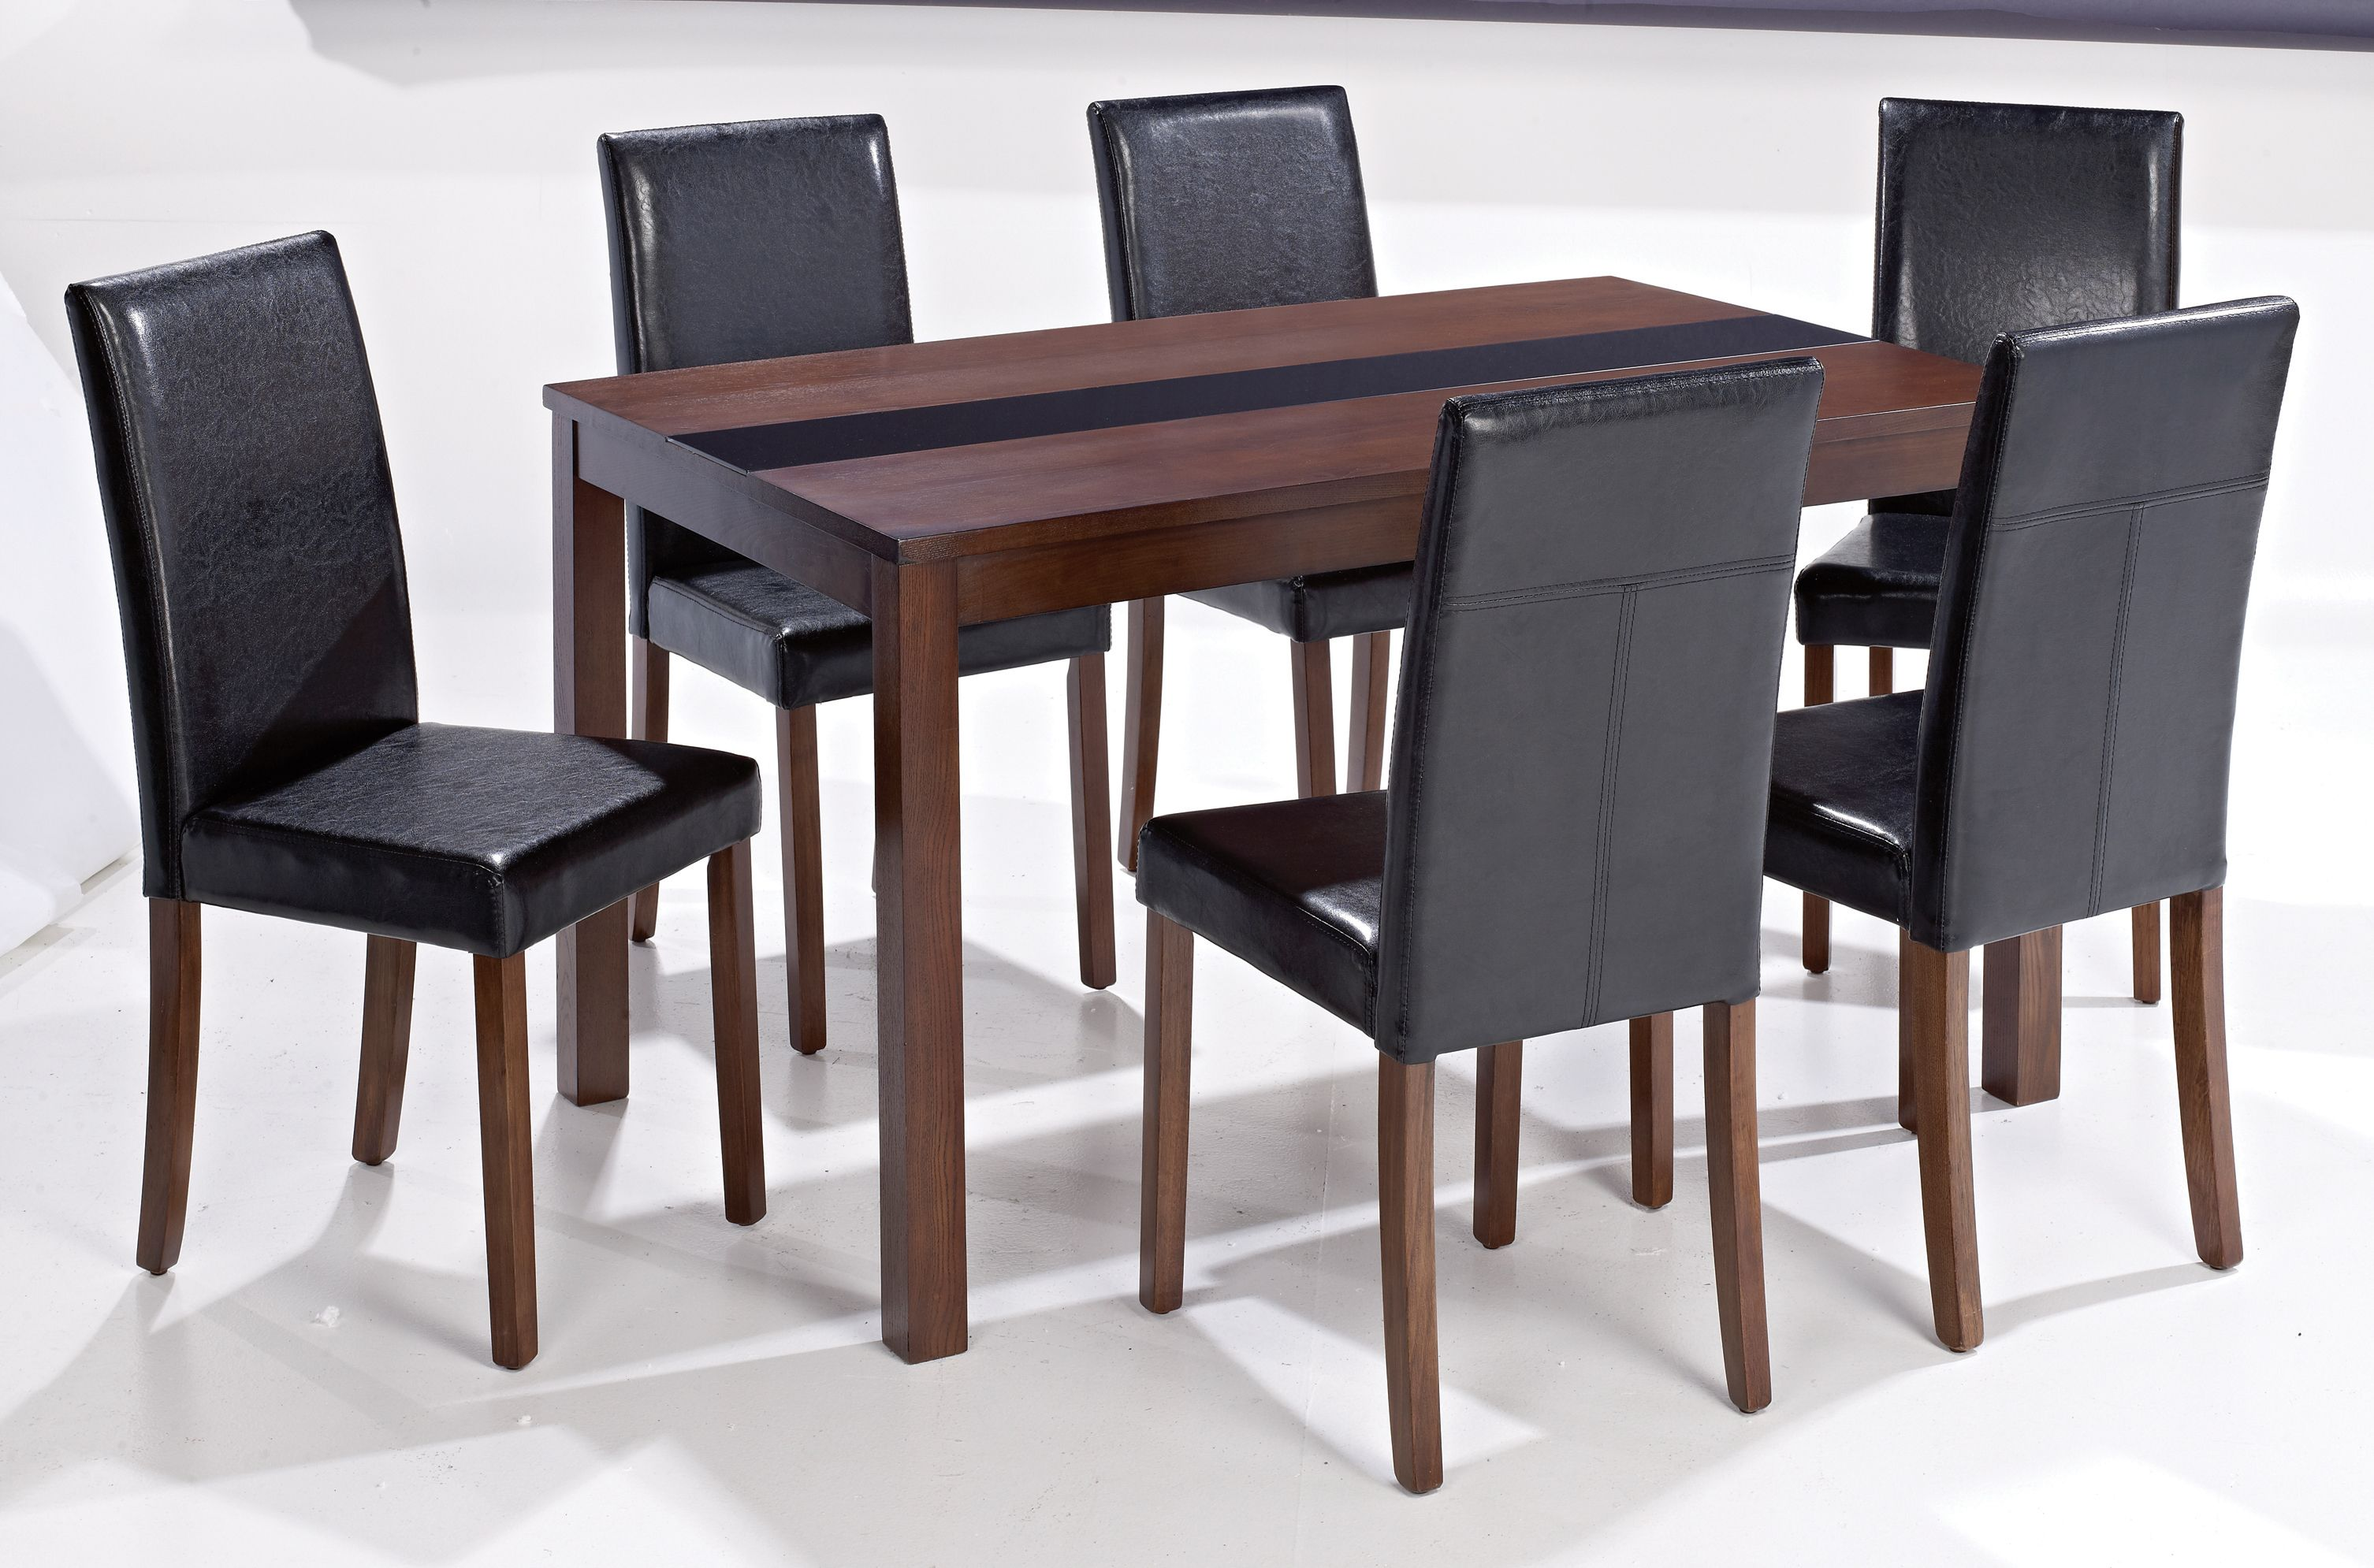 Ashleigh Walnut Dining Sets Sophisticated And Elegant Looking Tables In Real Ash Veneer With A Walnut Finish Beautifully Contrasted With A Chairs